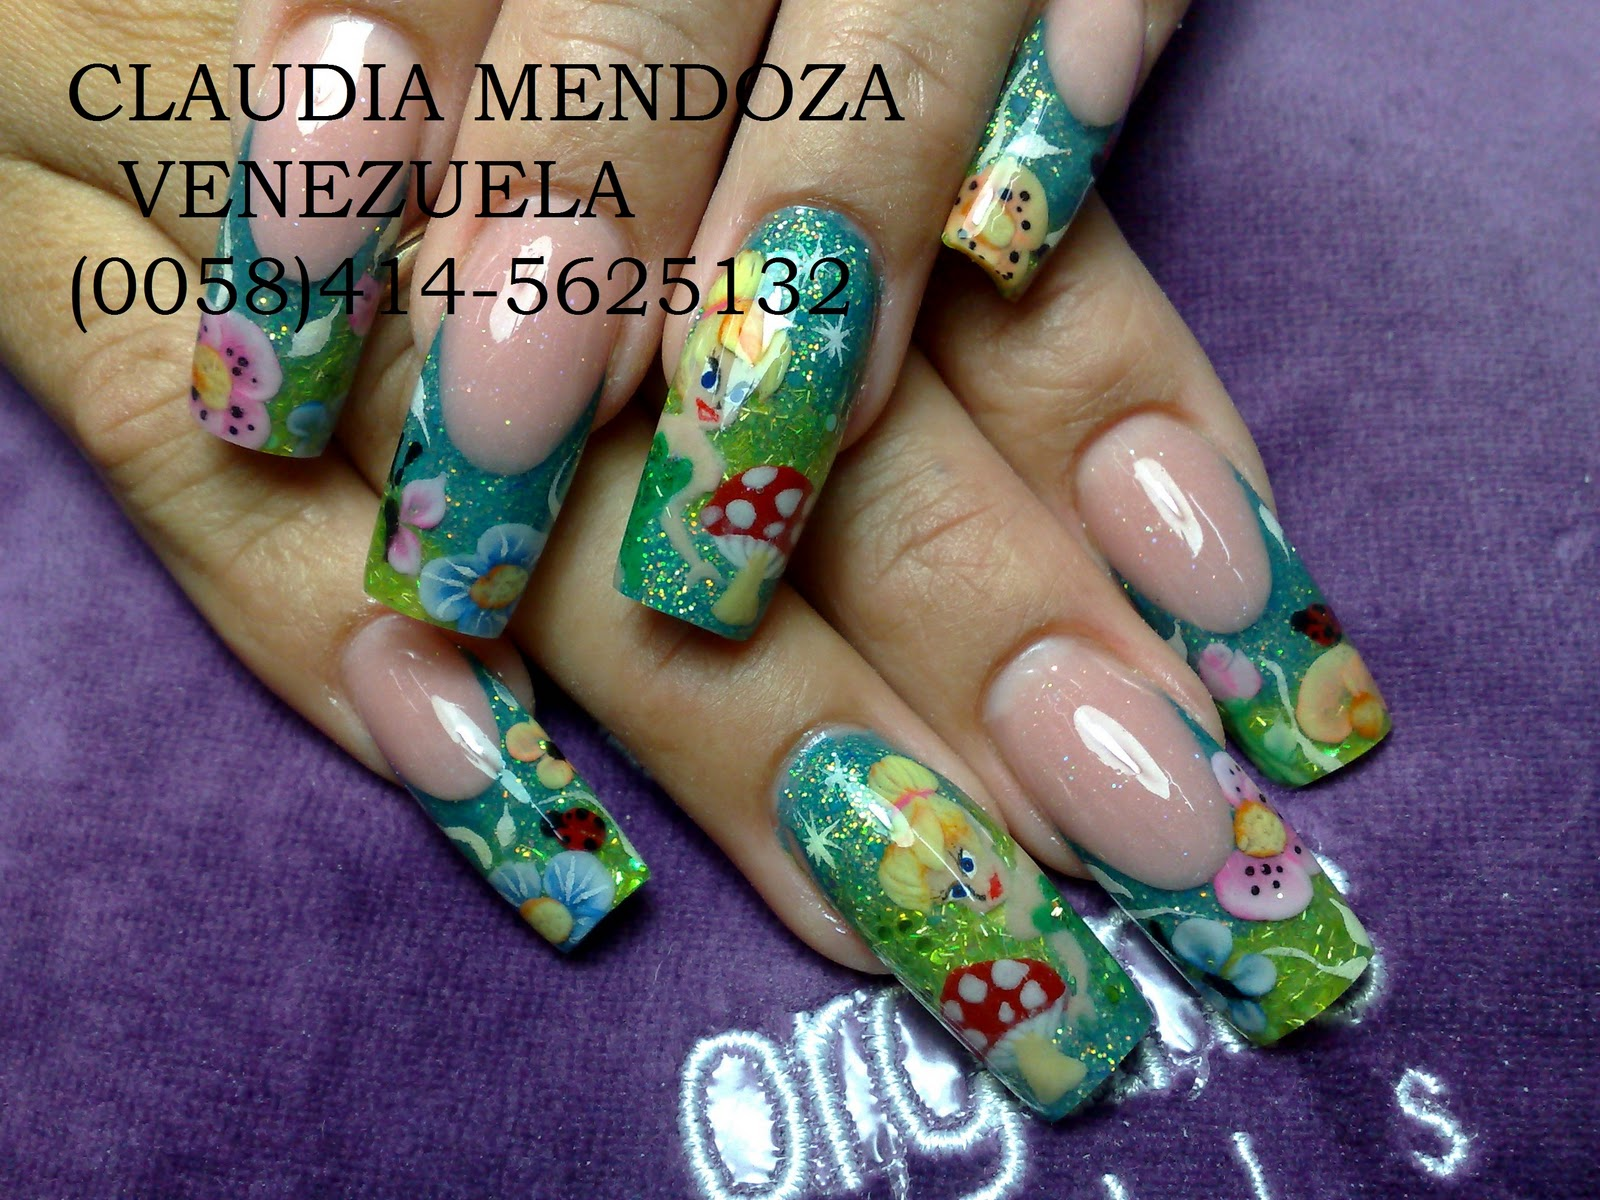 Deco Nails Galeria Claudia Mendoza